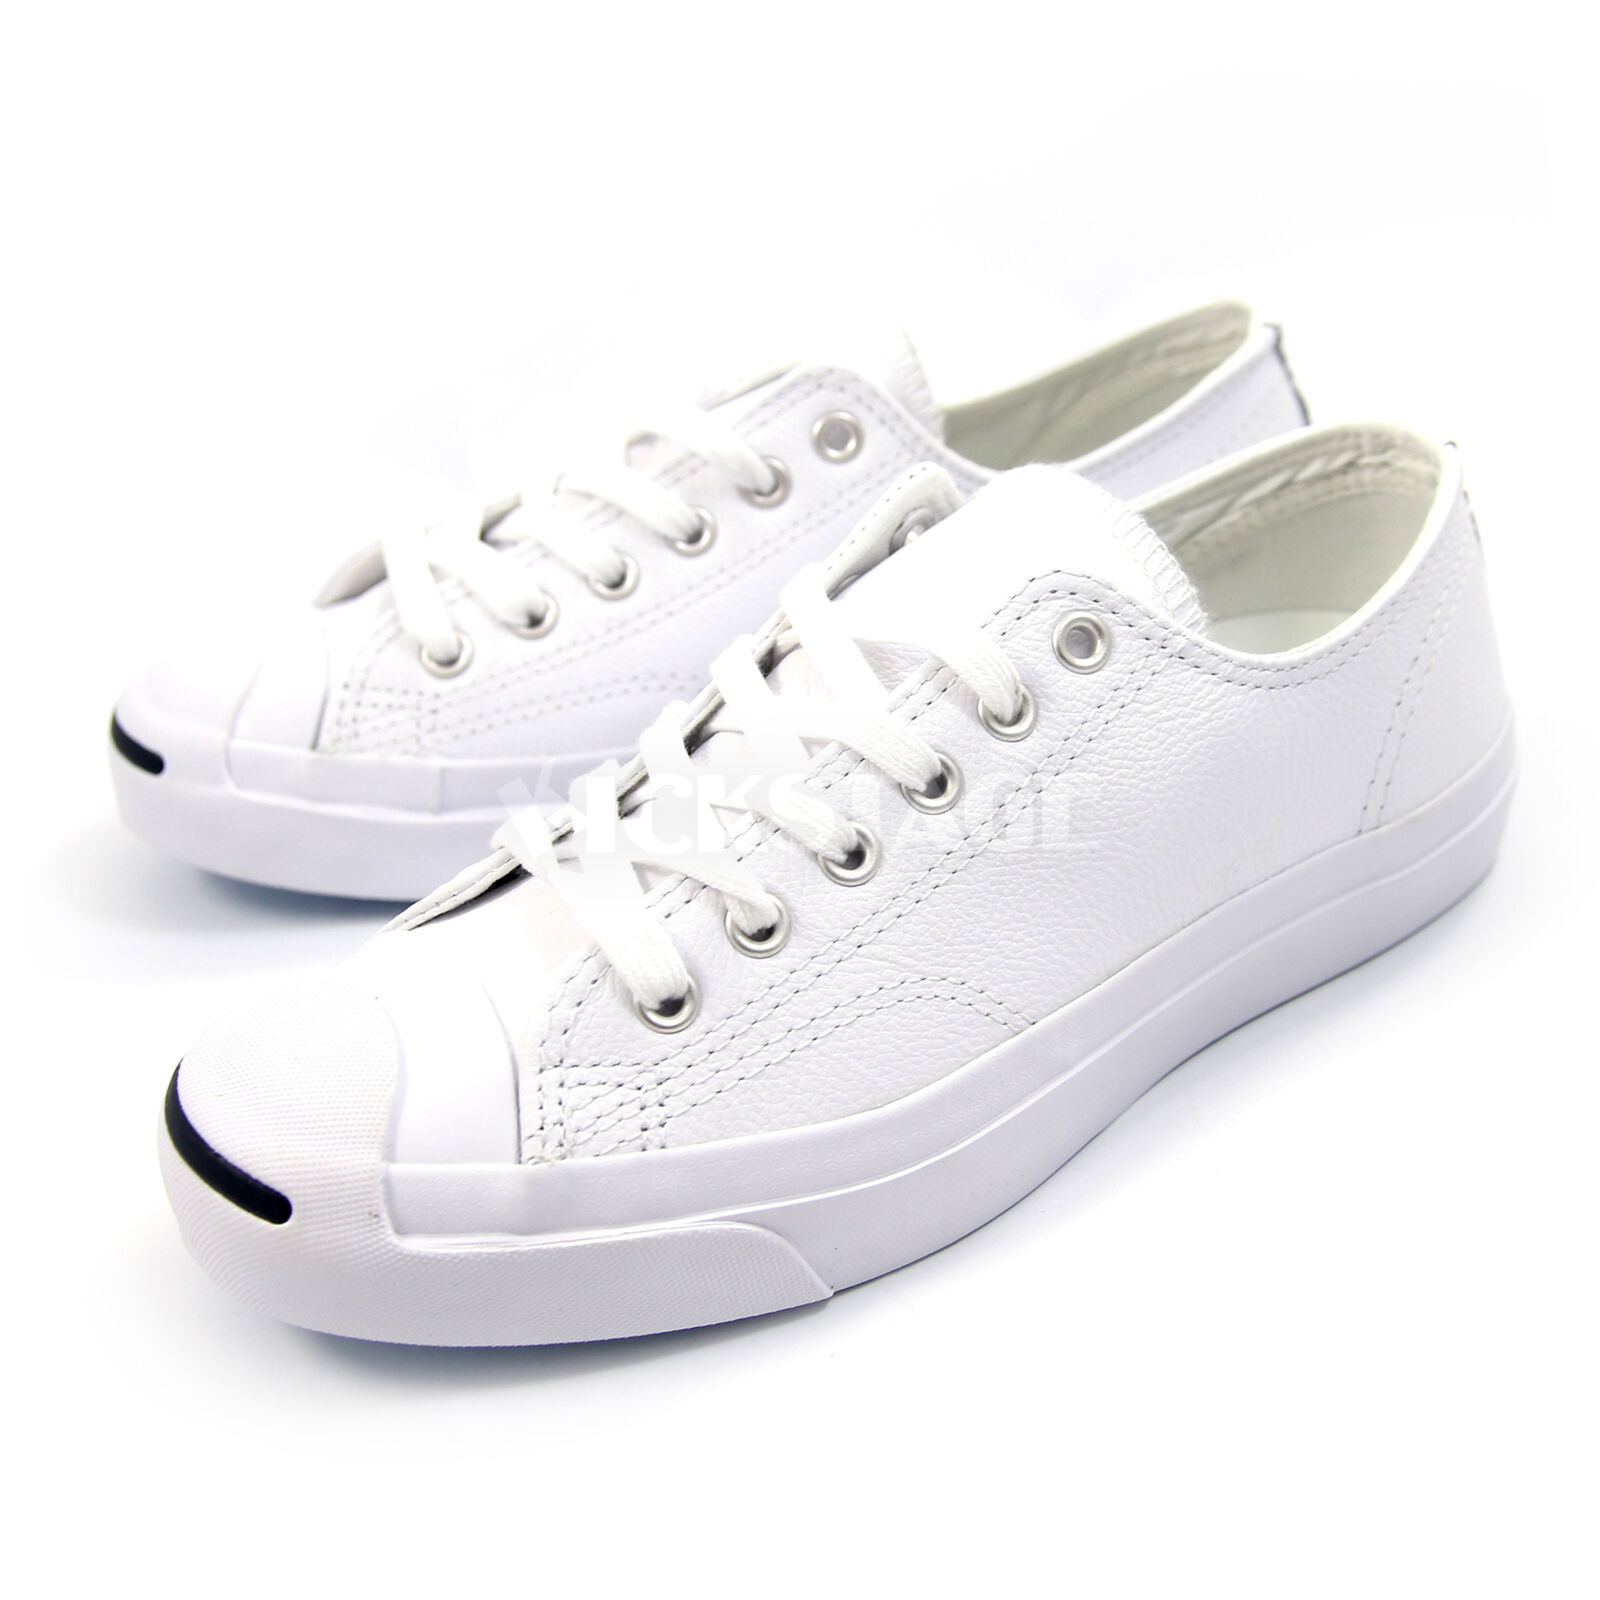 Converse Jack Purcell Mens Shoes